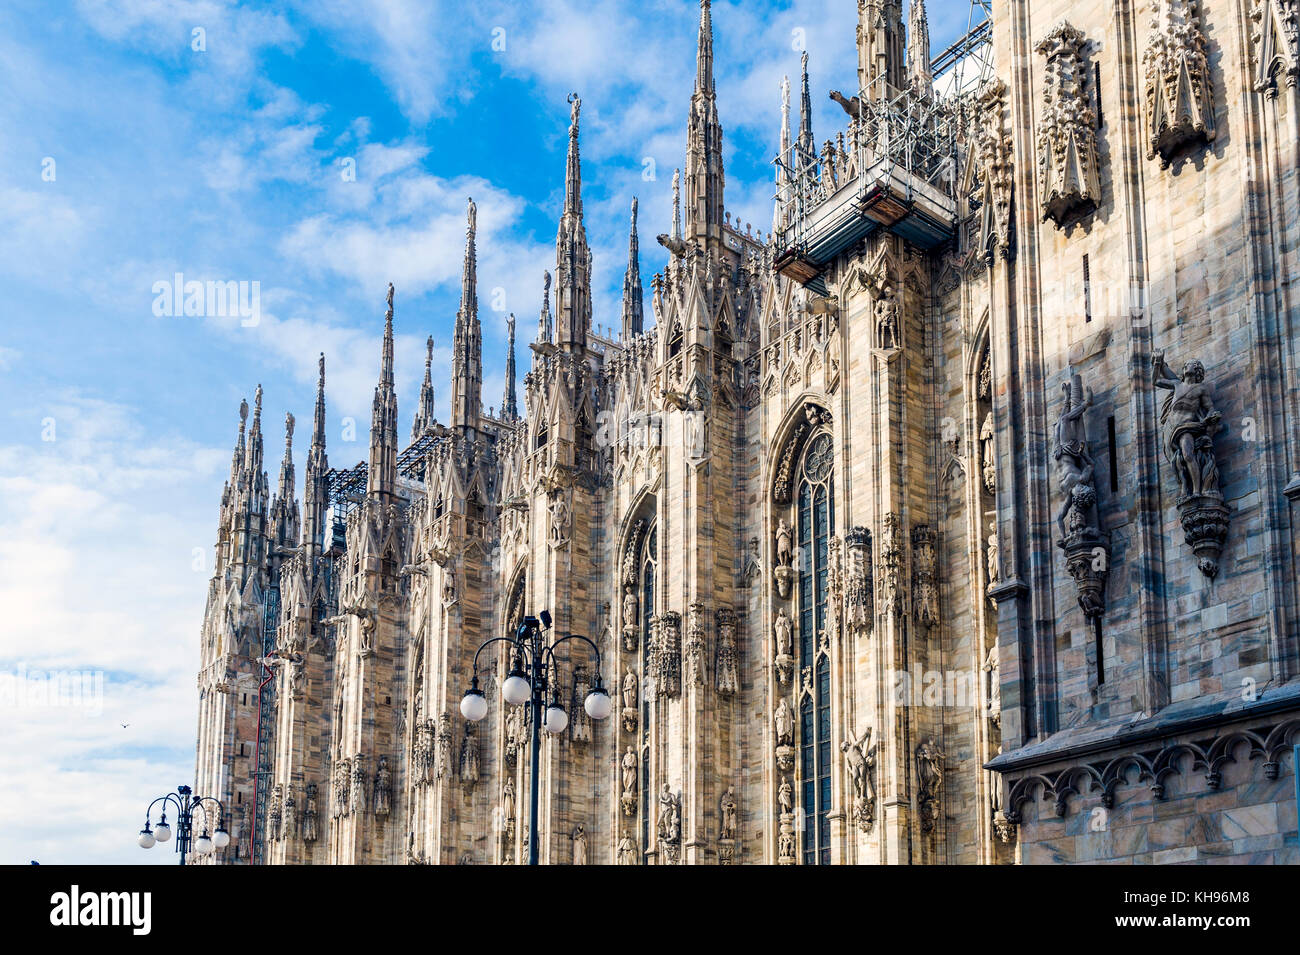 Italy. Lombardy. Milan. Milan Cathedral, Duomo di Milano, one of the largest churches in the world - Stock Image